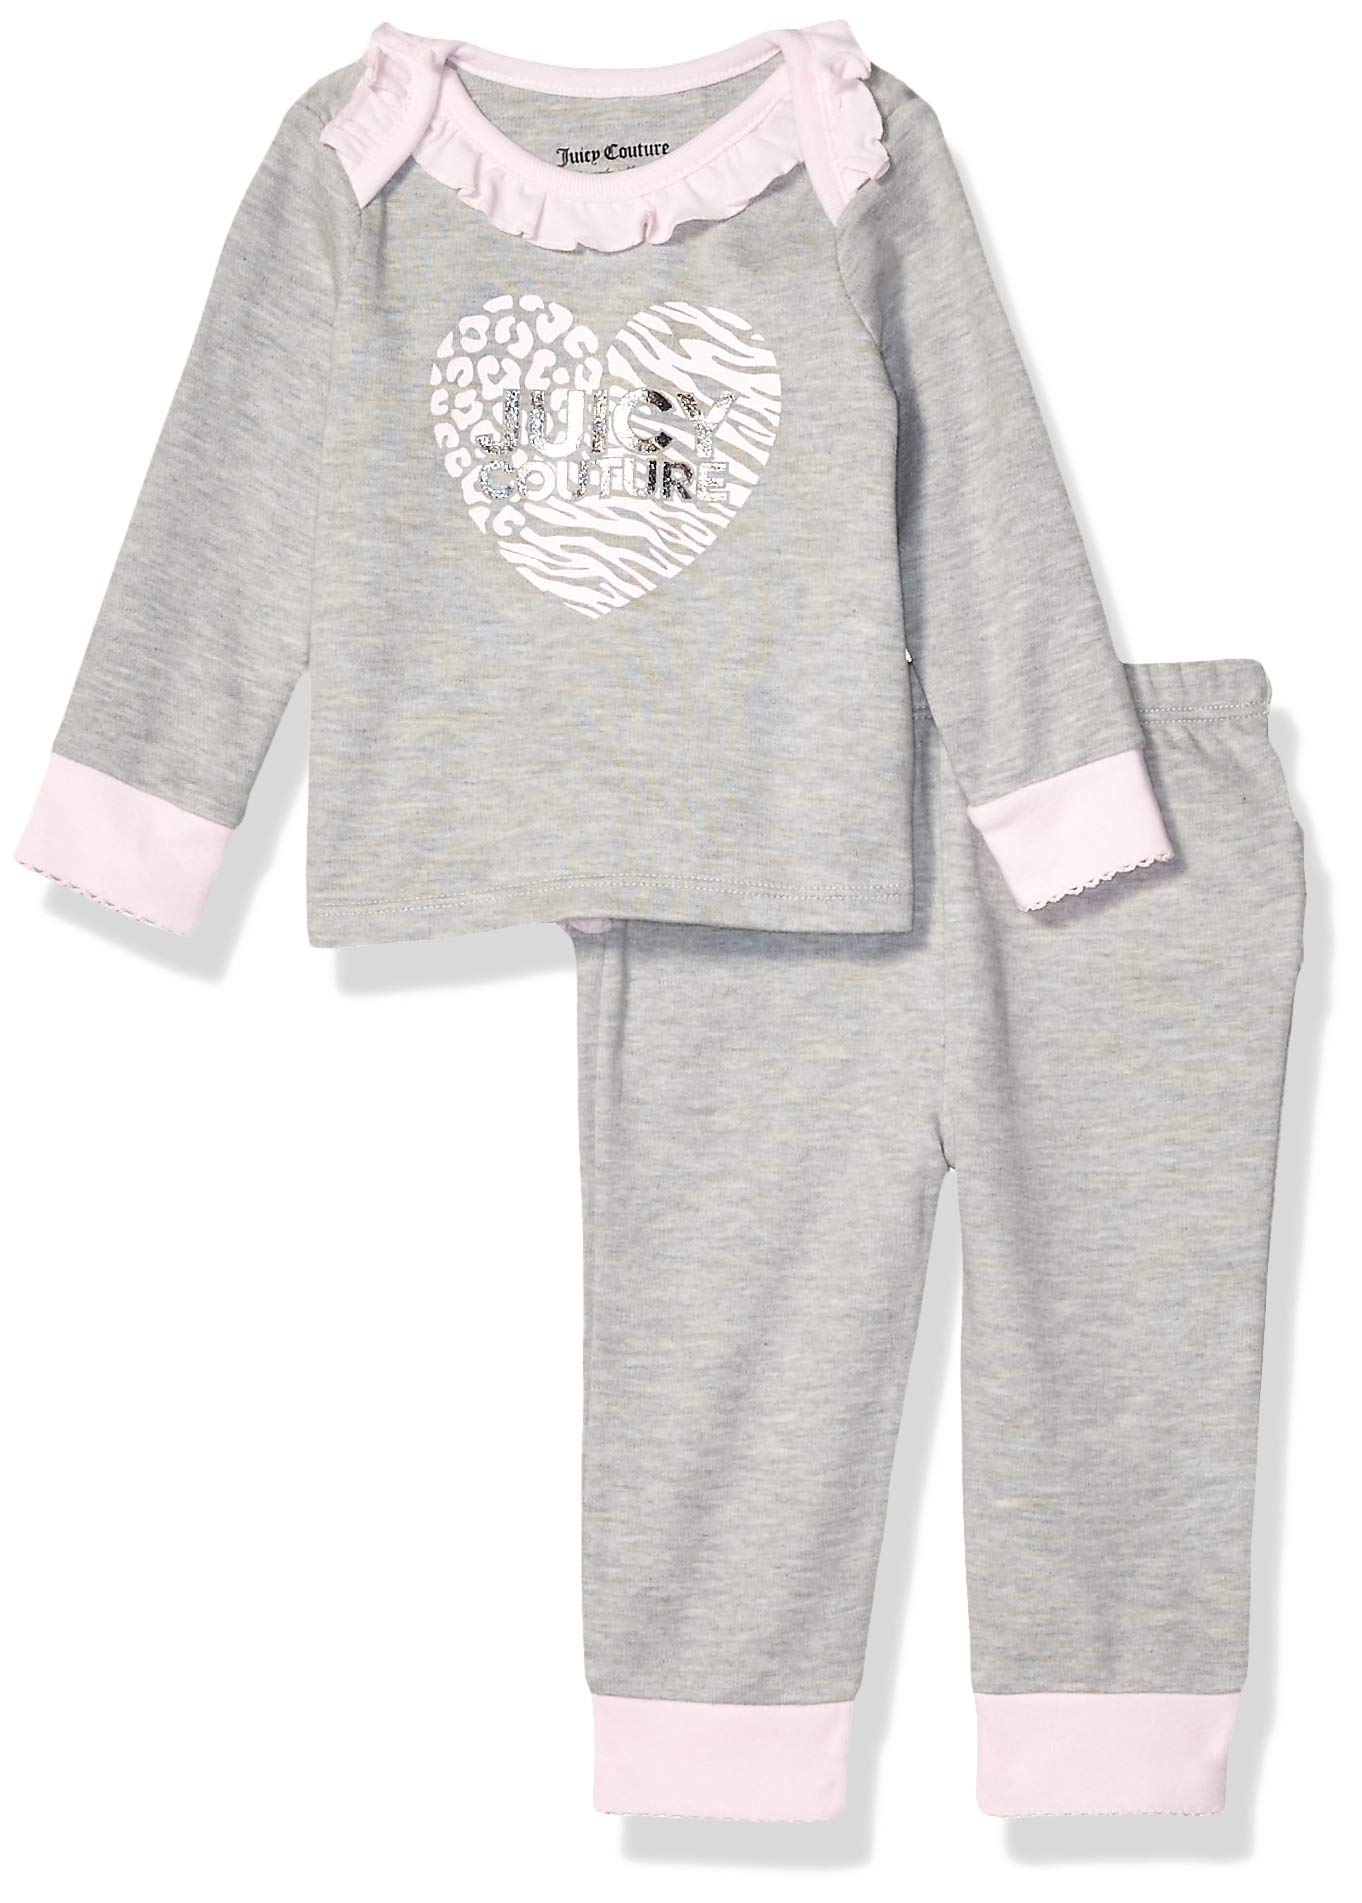 Juicy Couture Baby Girls 2 Pieces Pants Set